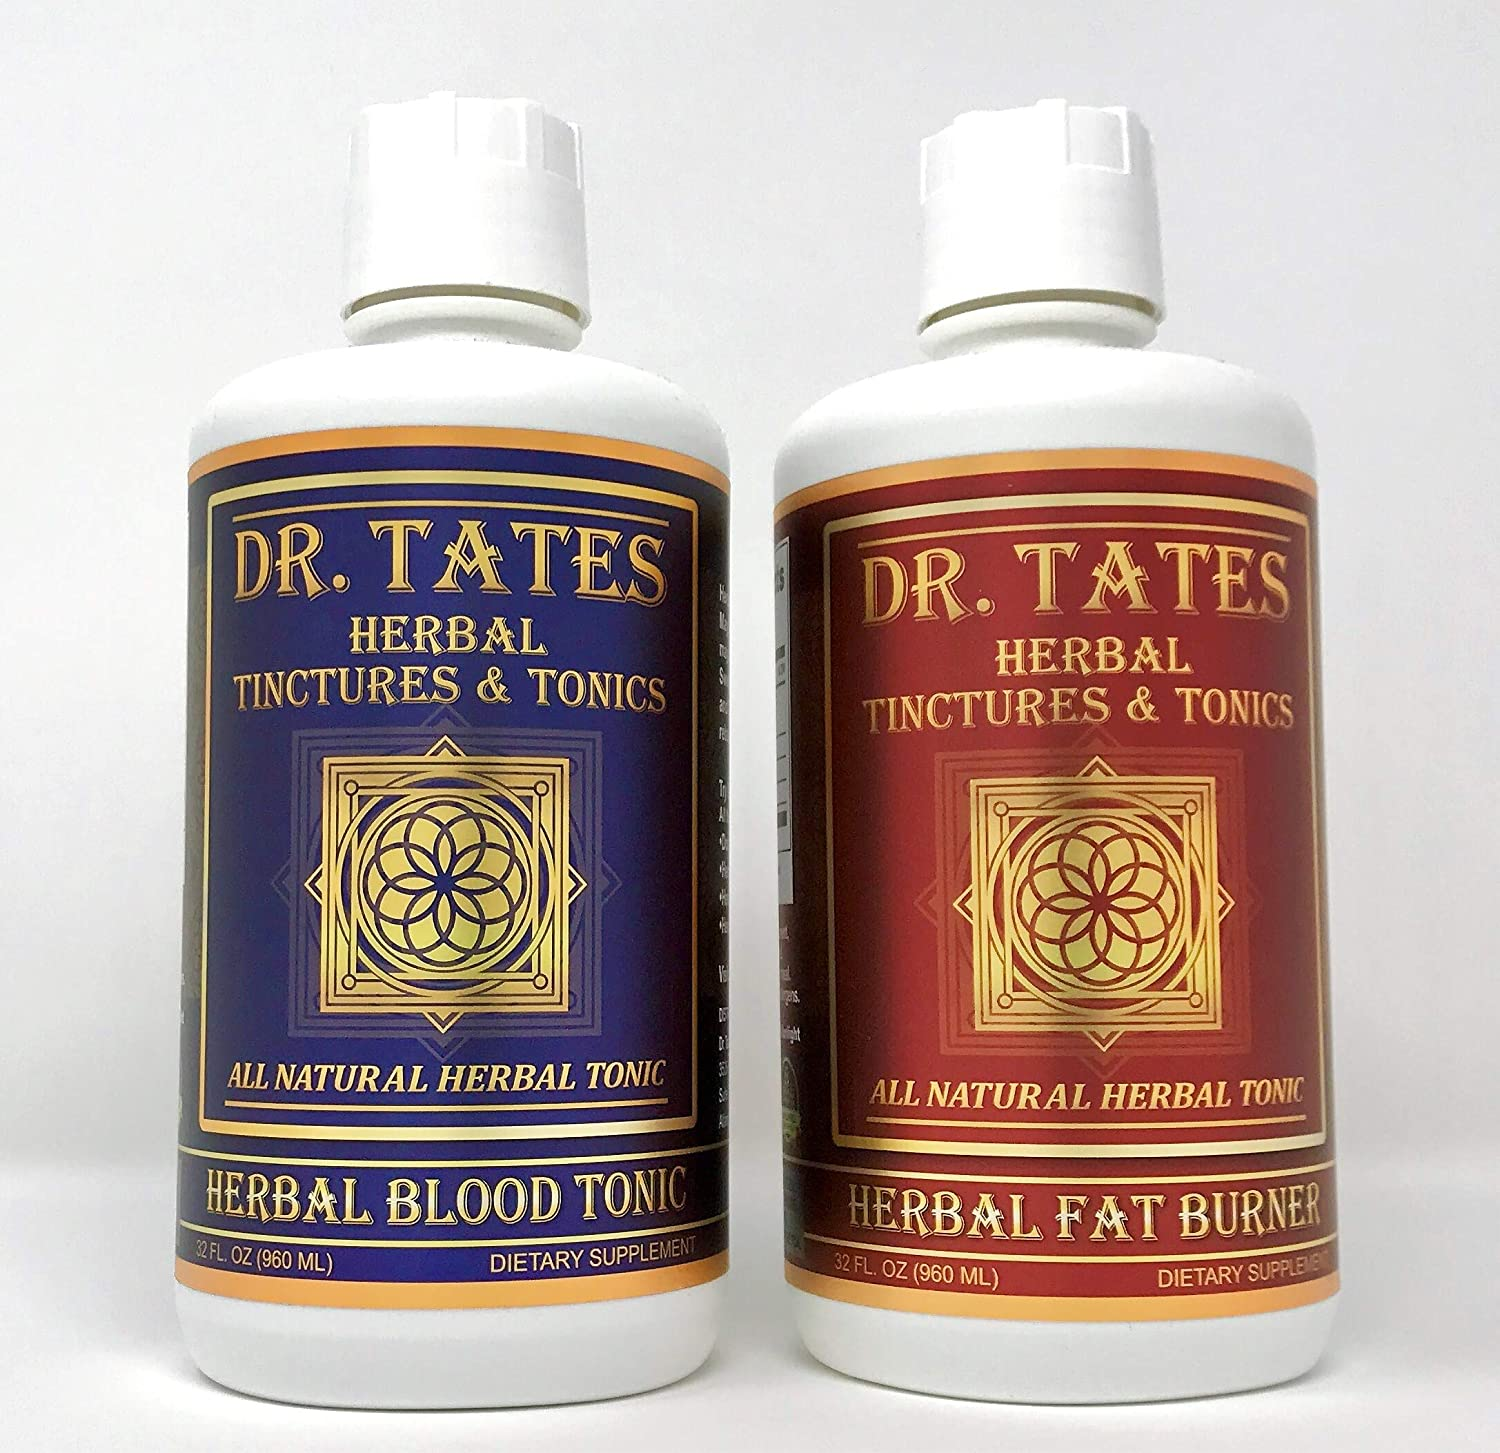 Dr. Tates Herbal Weight Loss Program – Look Great and Feel Better Fast. Dr. Tates Herbal Fat Burner and Herbal Blood Tonic Works This incredible 2 Step combination can change your life. Lose your unwanted weight Naturally Order Today